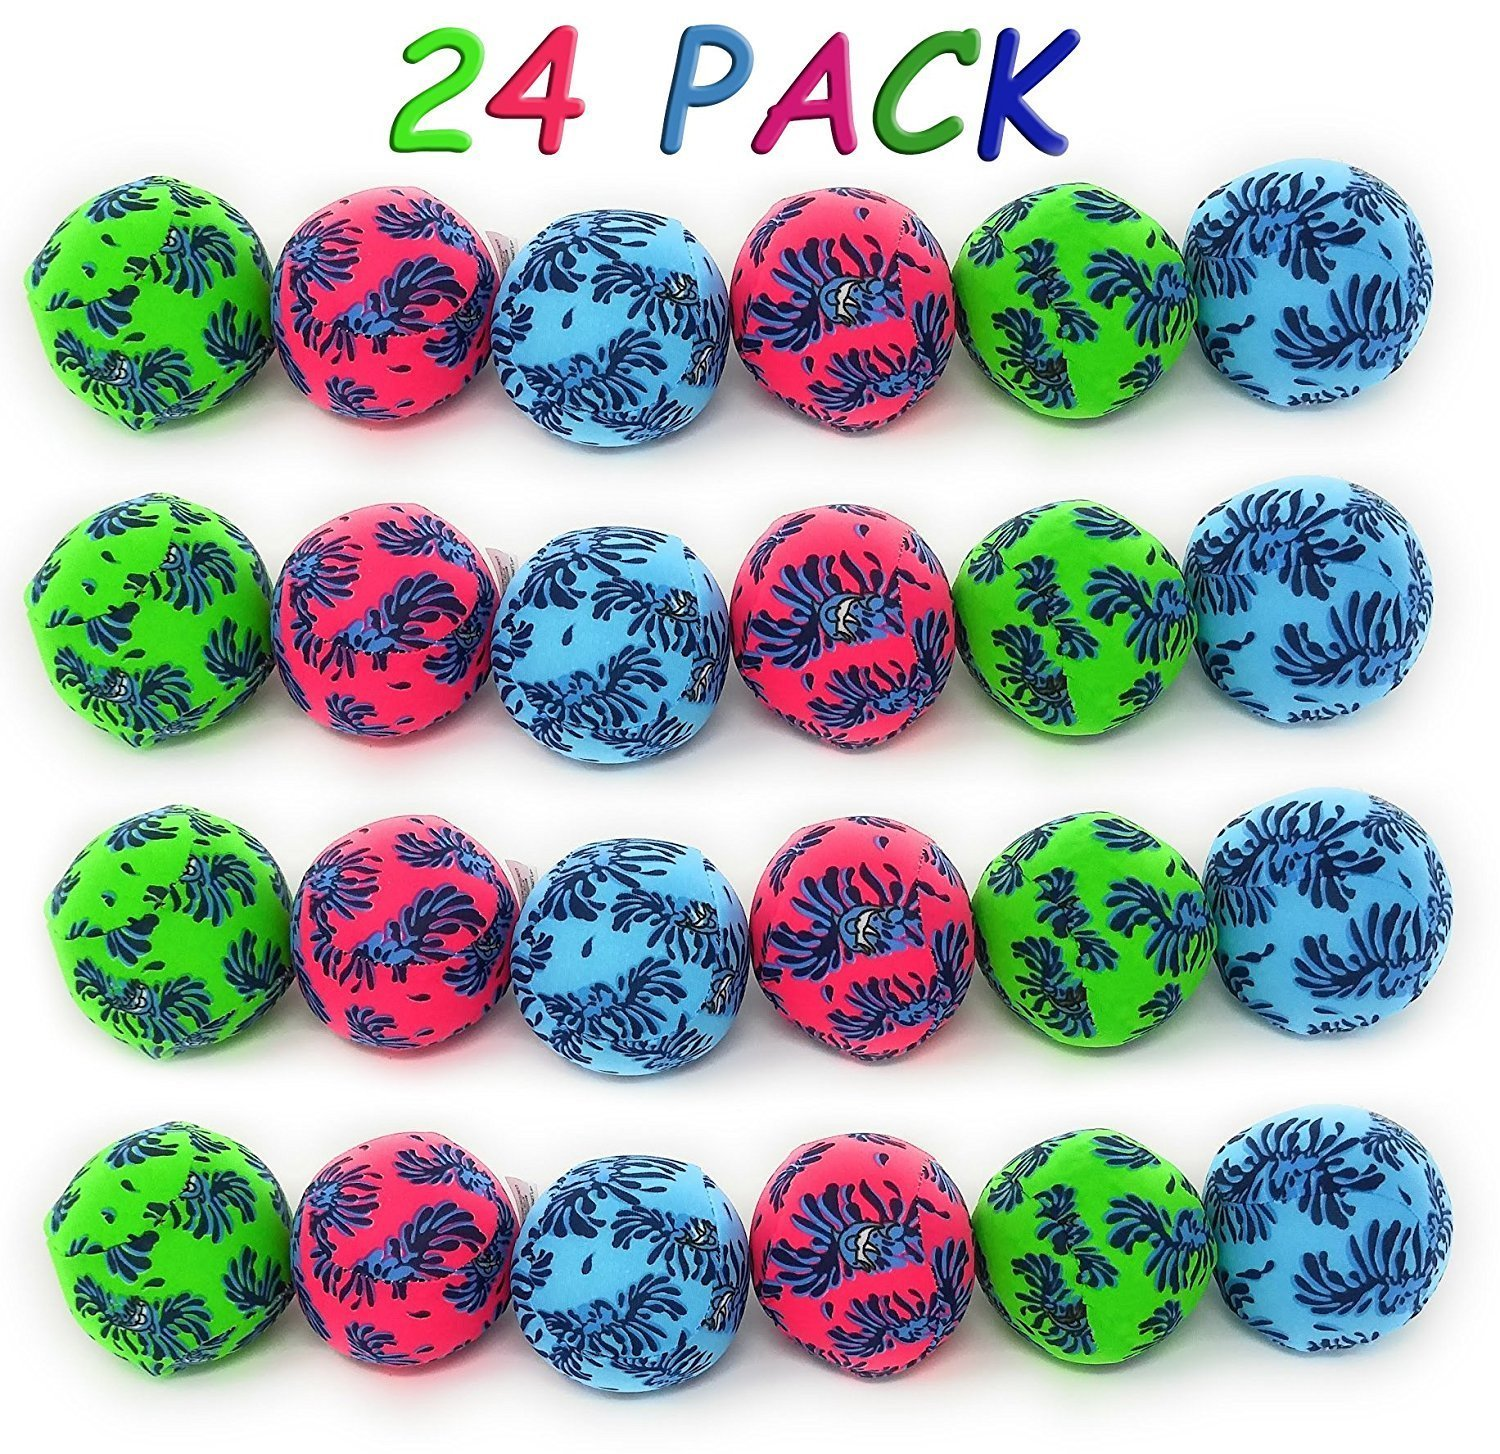 4E's Novelty Water balls pack of 24 3 inches bright colors by 4E's Novelty